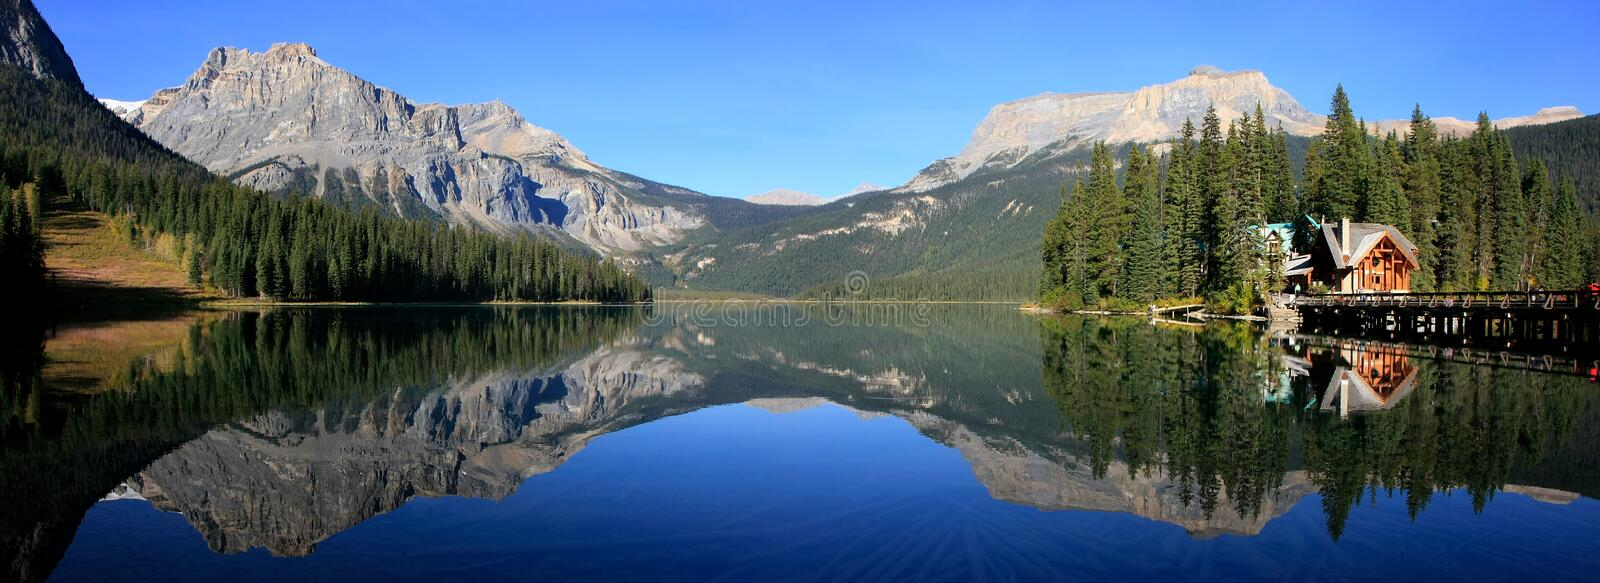 Panorama de Emerald Lake, Yoho National Park, Columbia Britânica, imagem de stock royalty free